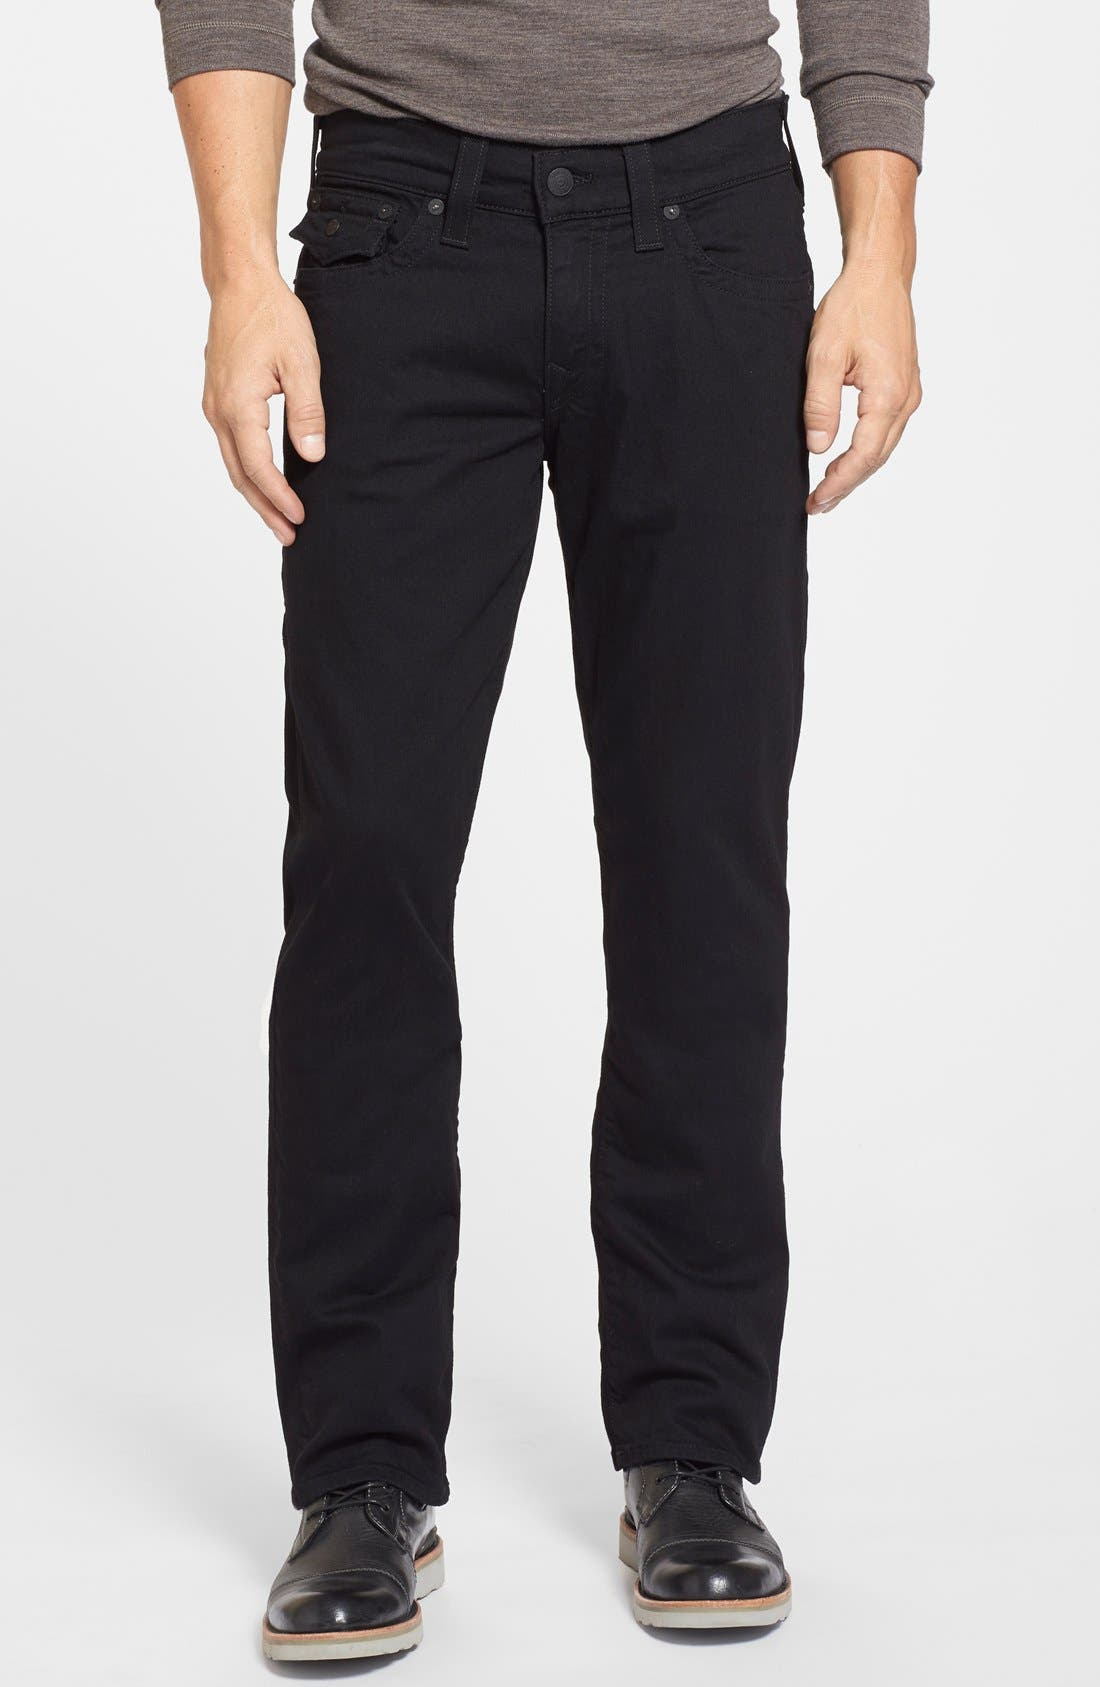 Ricky Relaxed Fit Jeans,                         Main,                         color, Midnight Black